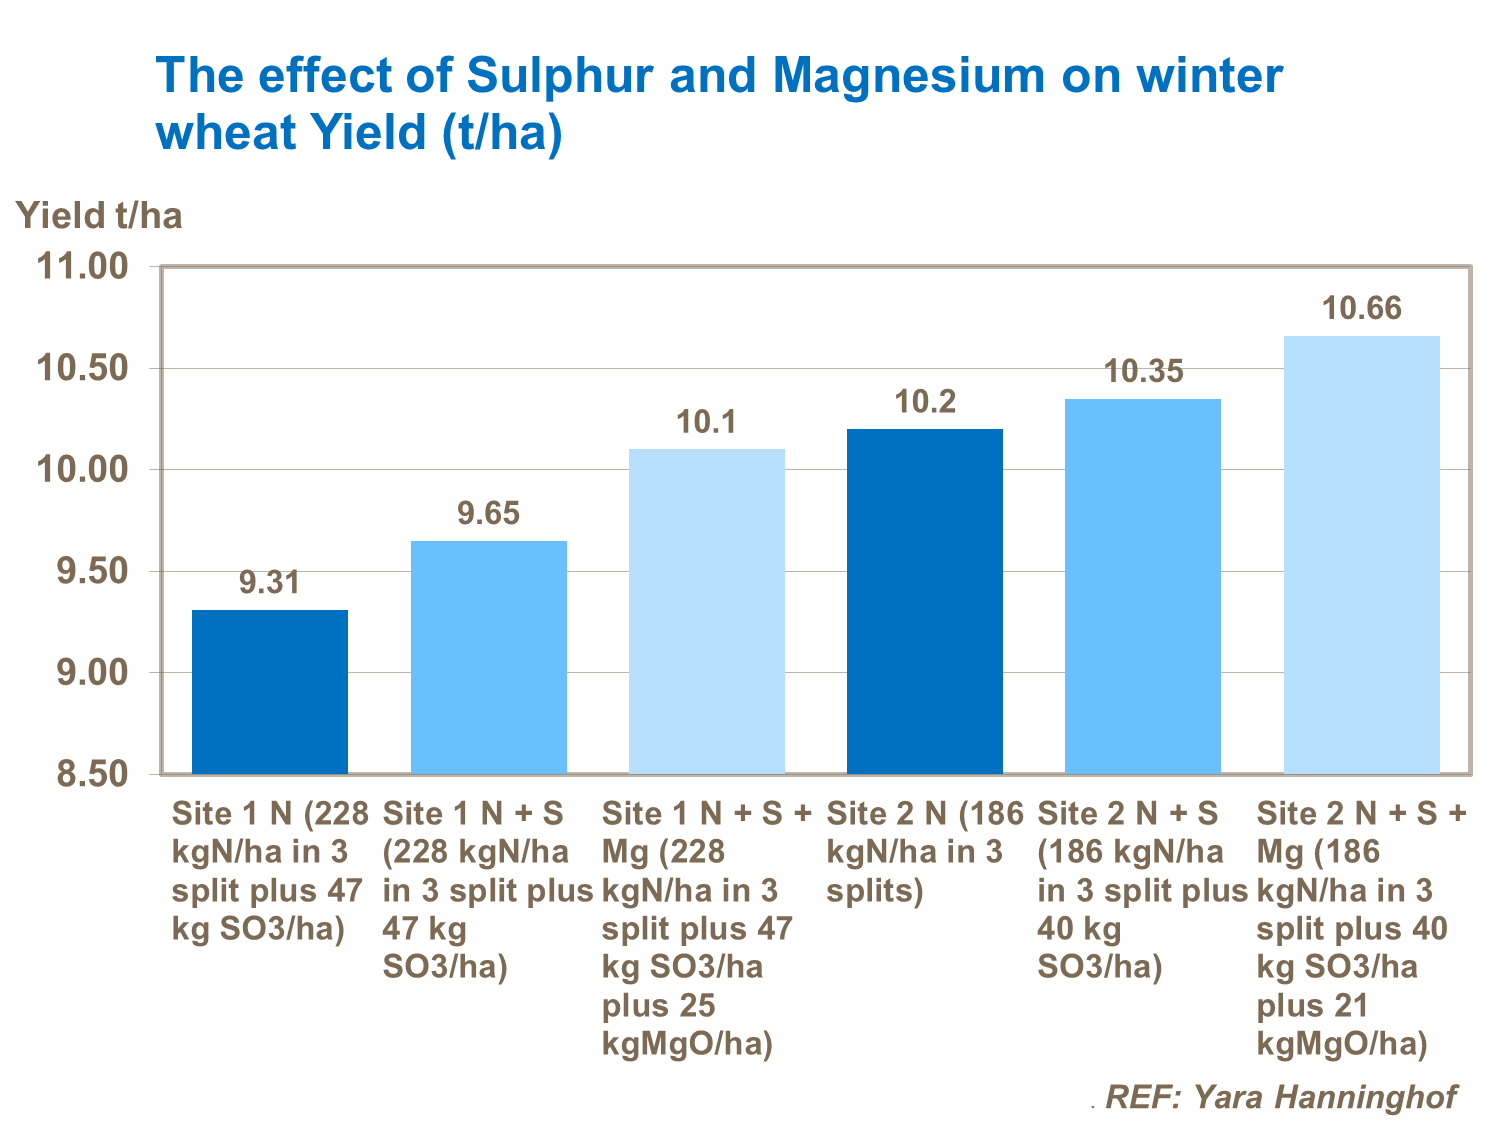 The effect of Sulphur and Magnesium on winter wheat Yield